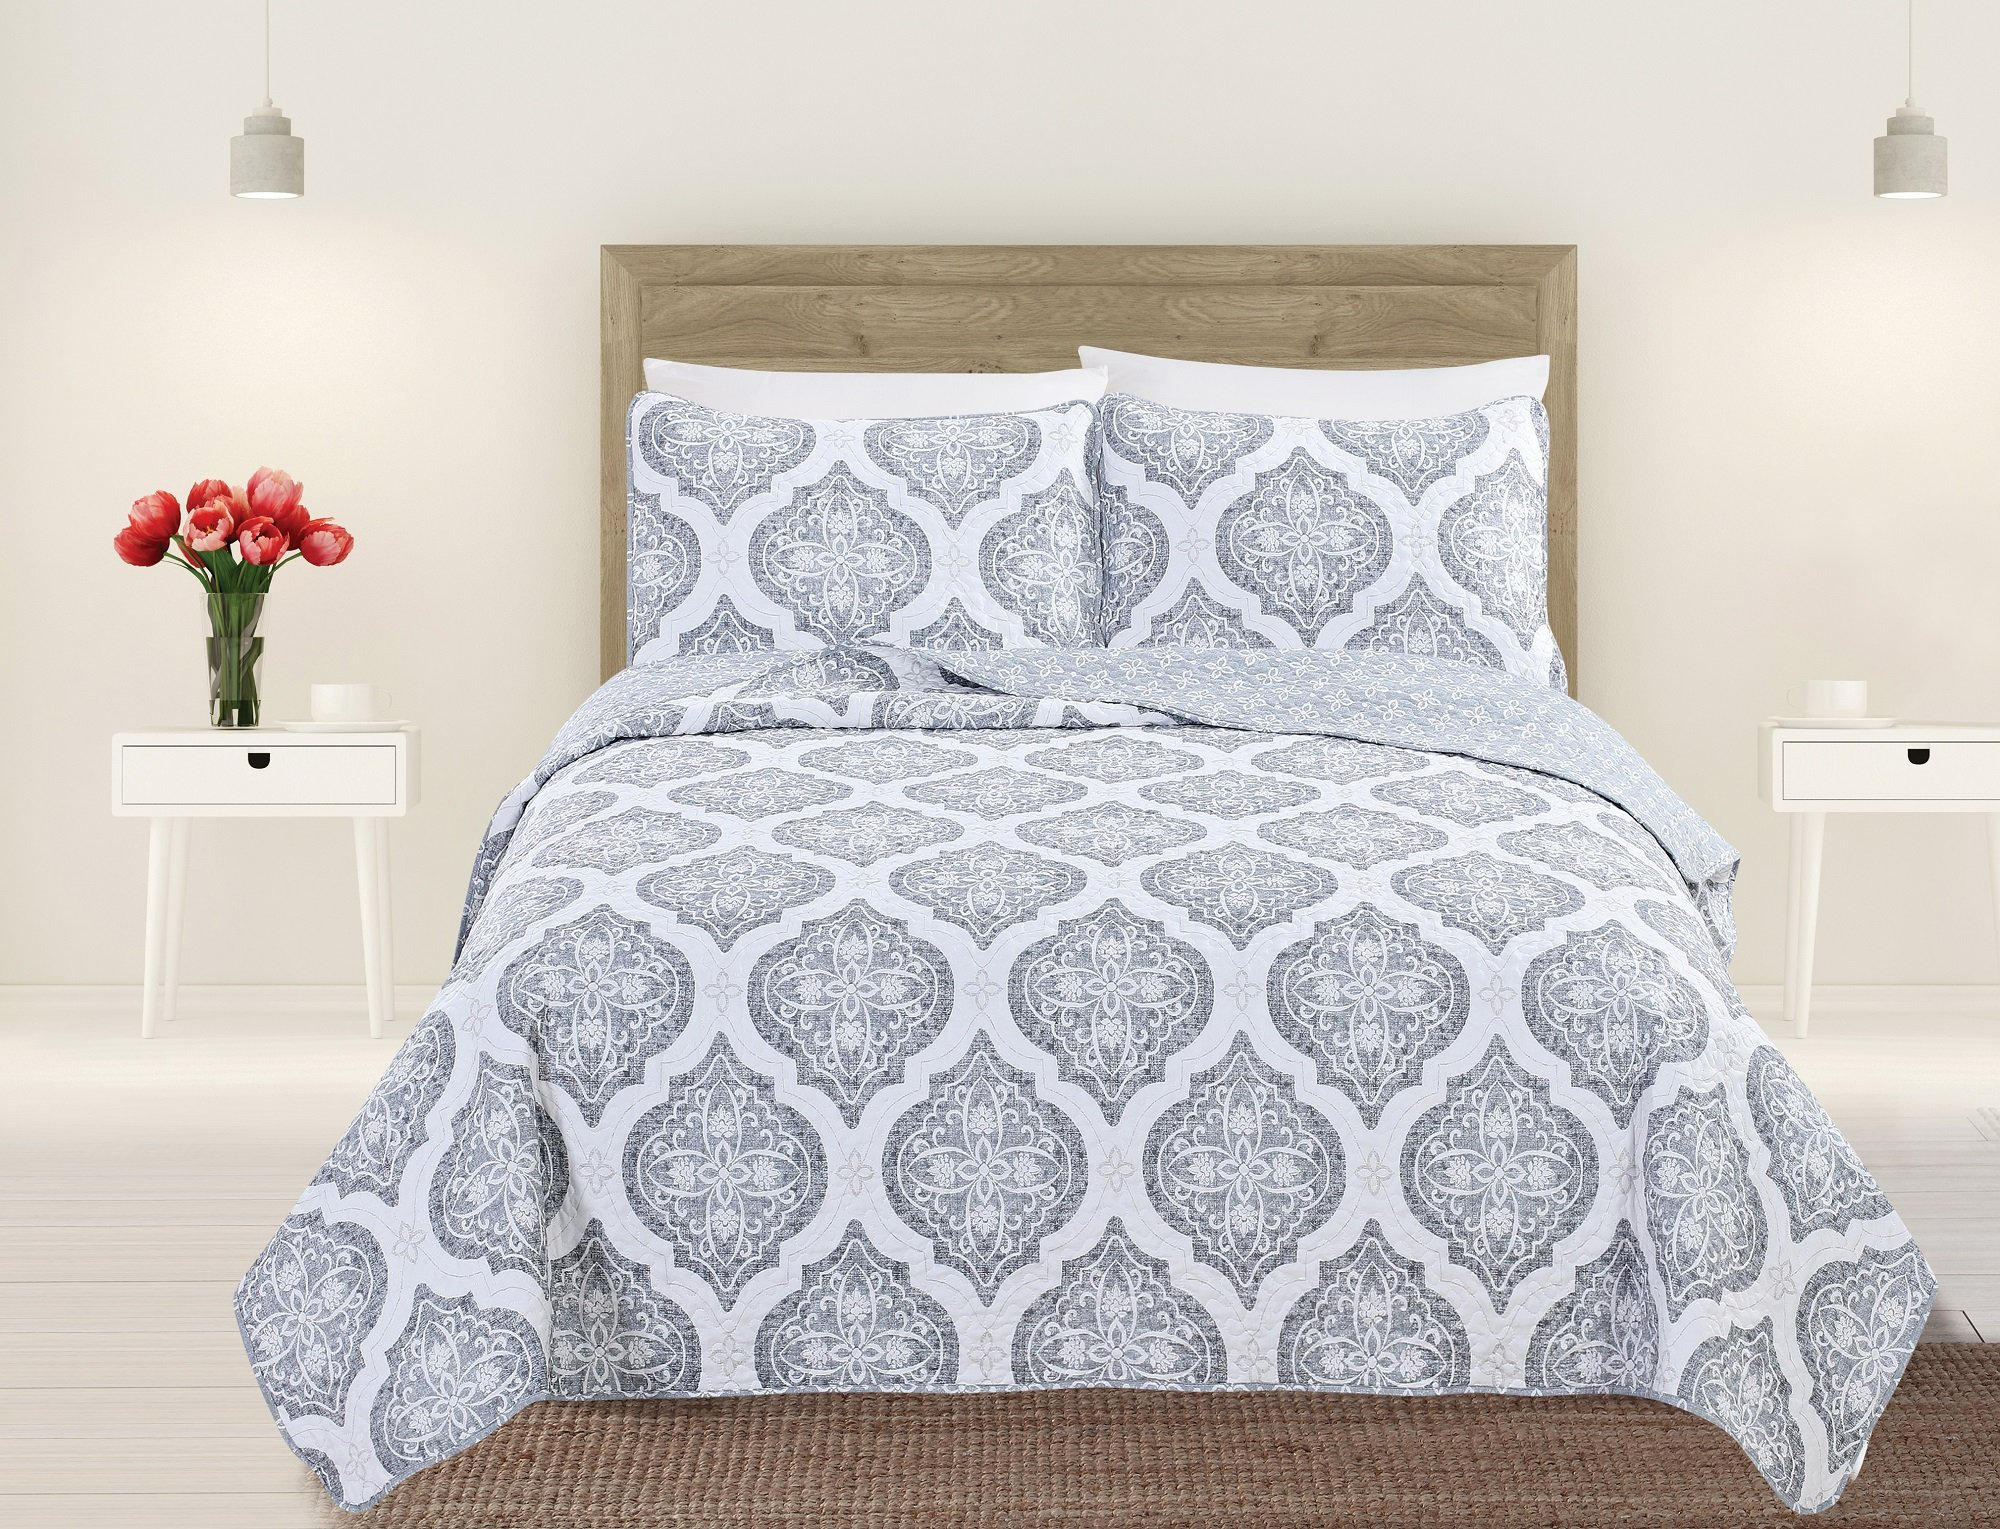 Home Fashion Designs Arabesque Collection 3-Piece Luxury Quilt Set with Shams. Soft All-Season Microfiber Bedspread and Coverlet with Unique Pattern. By Brand. (King, Grey)